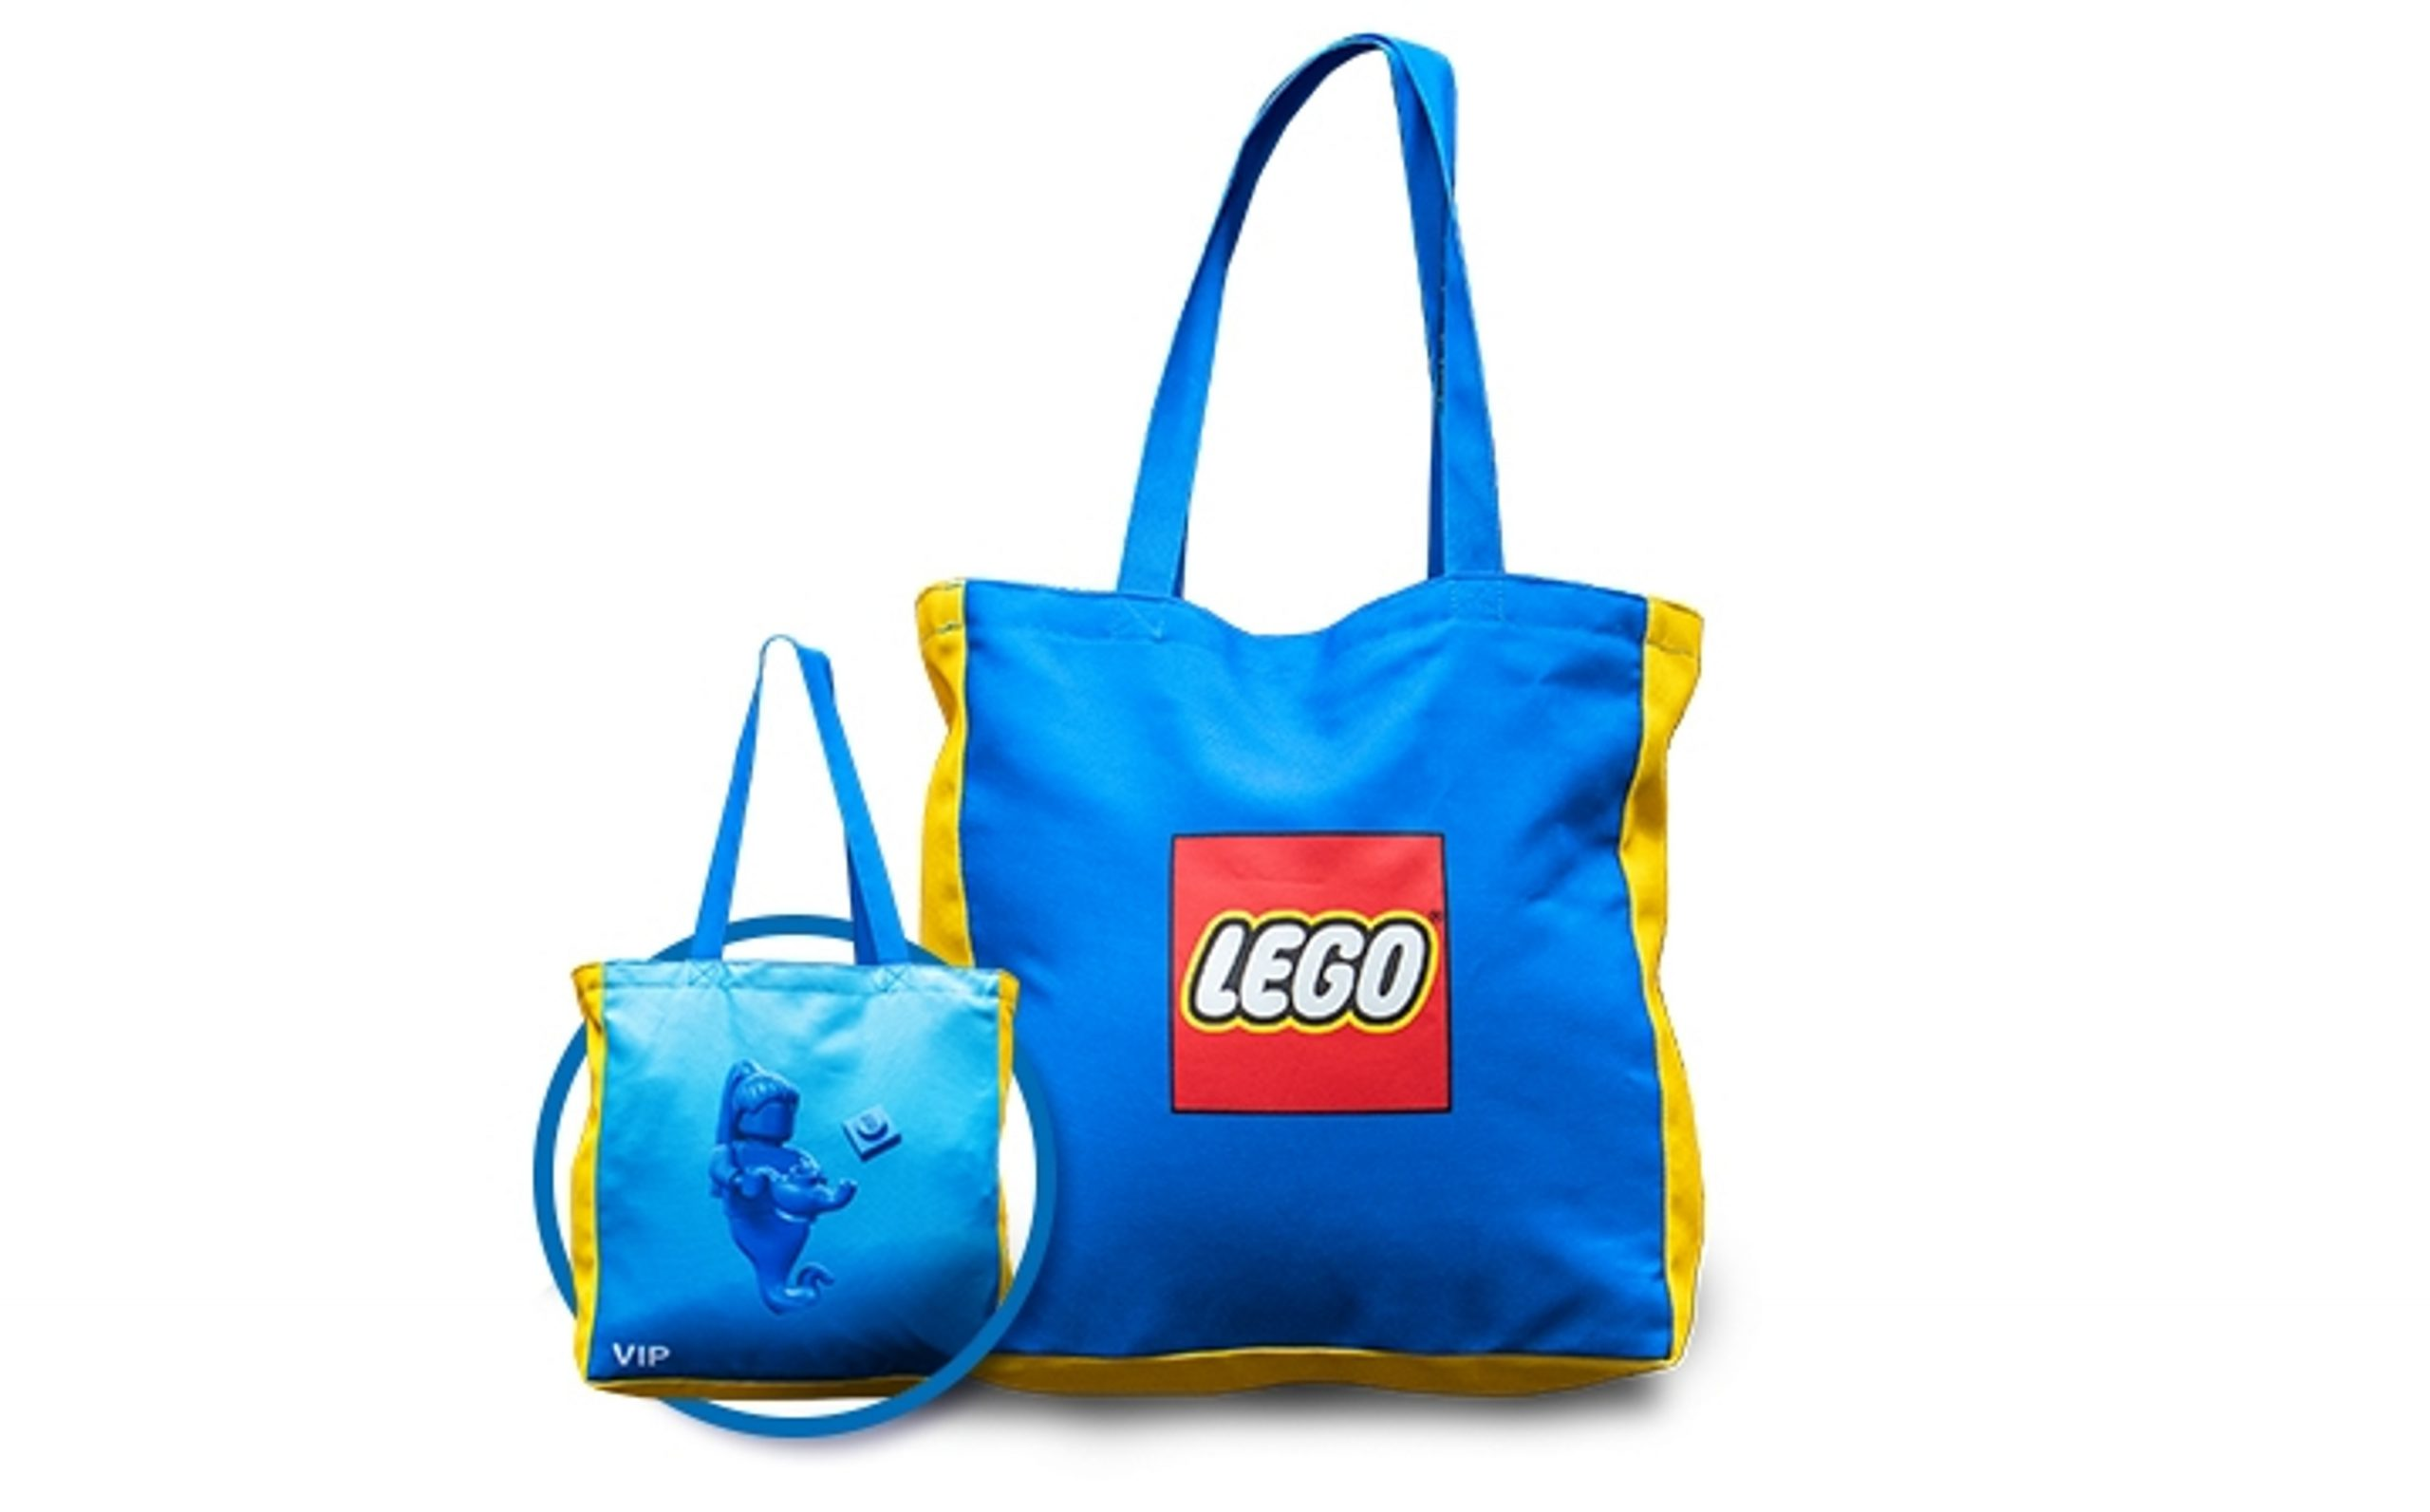 lego 5005910 vip reversible canvas bag scaled